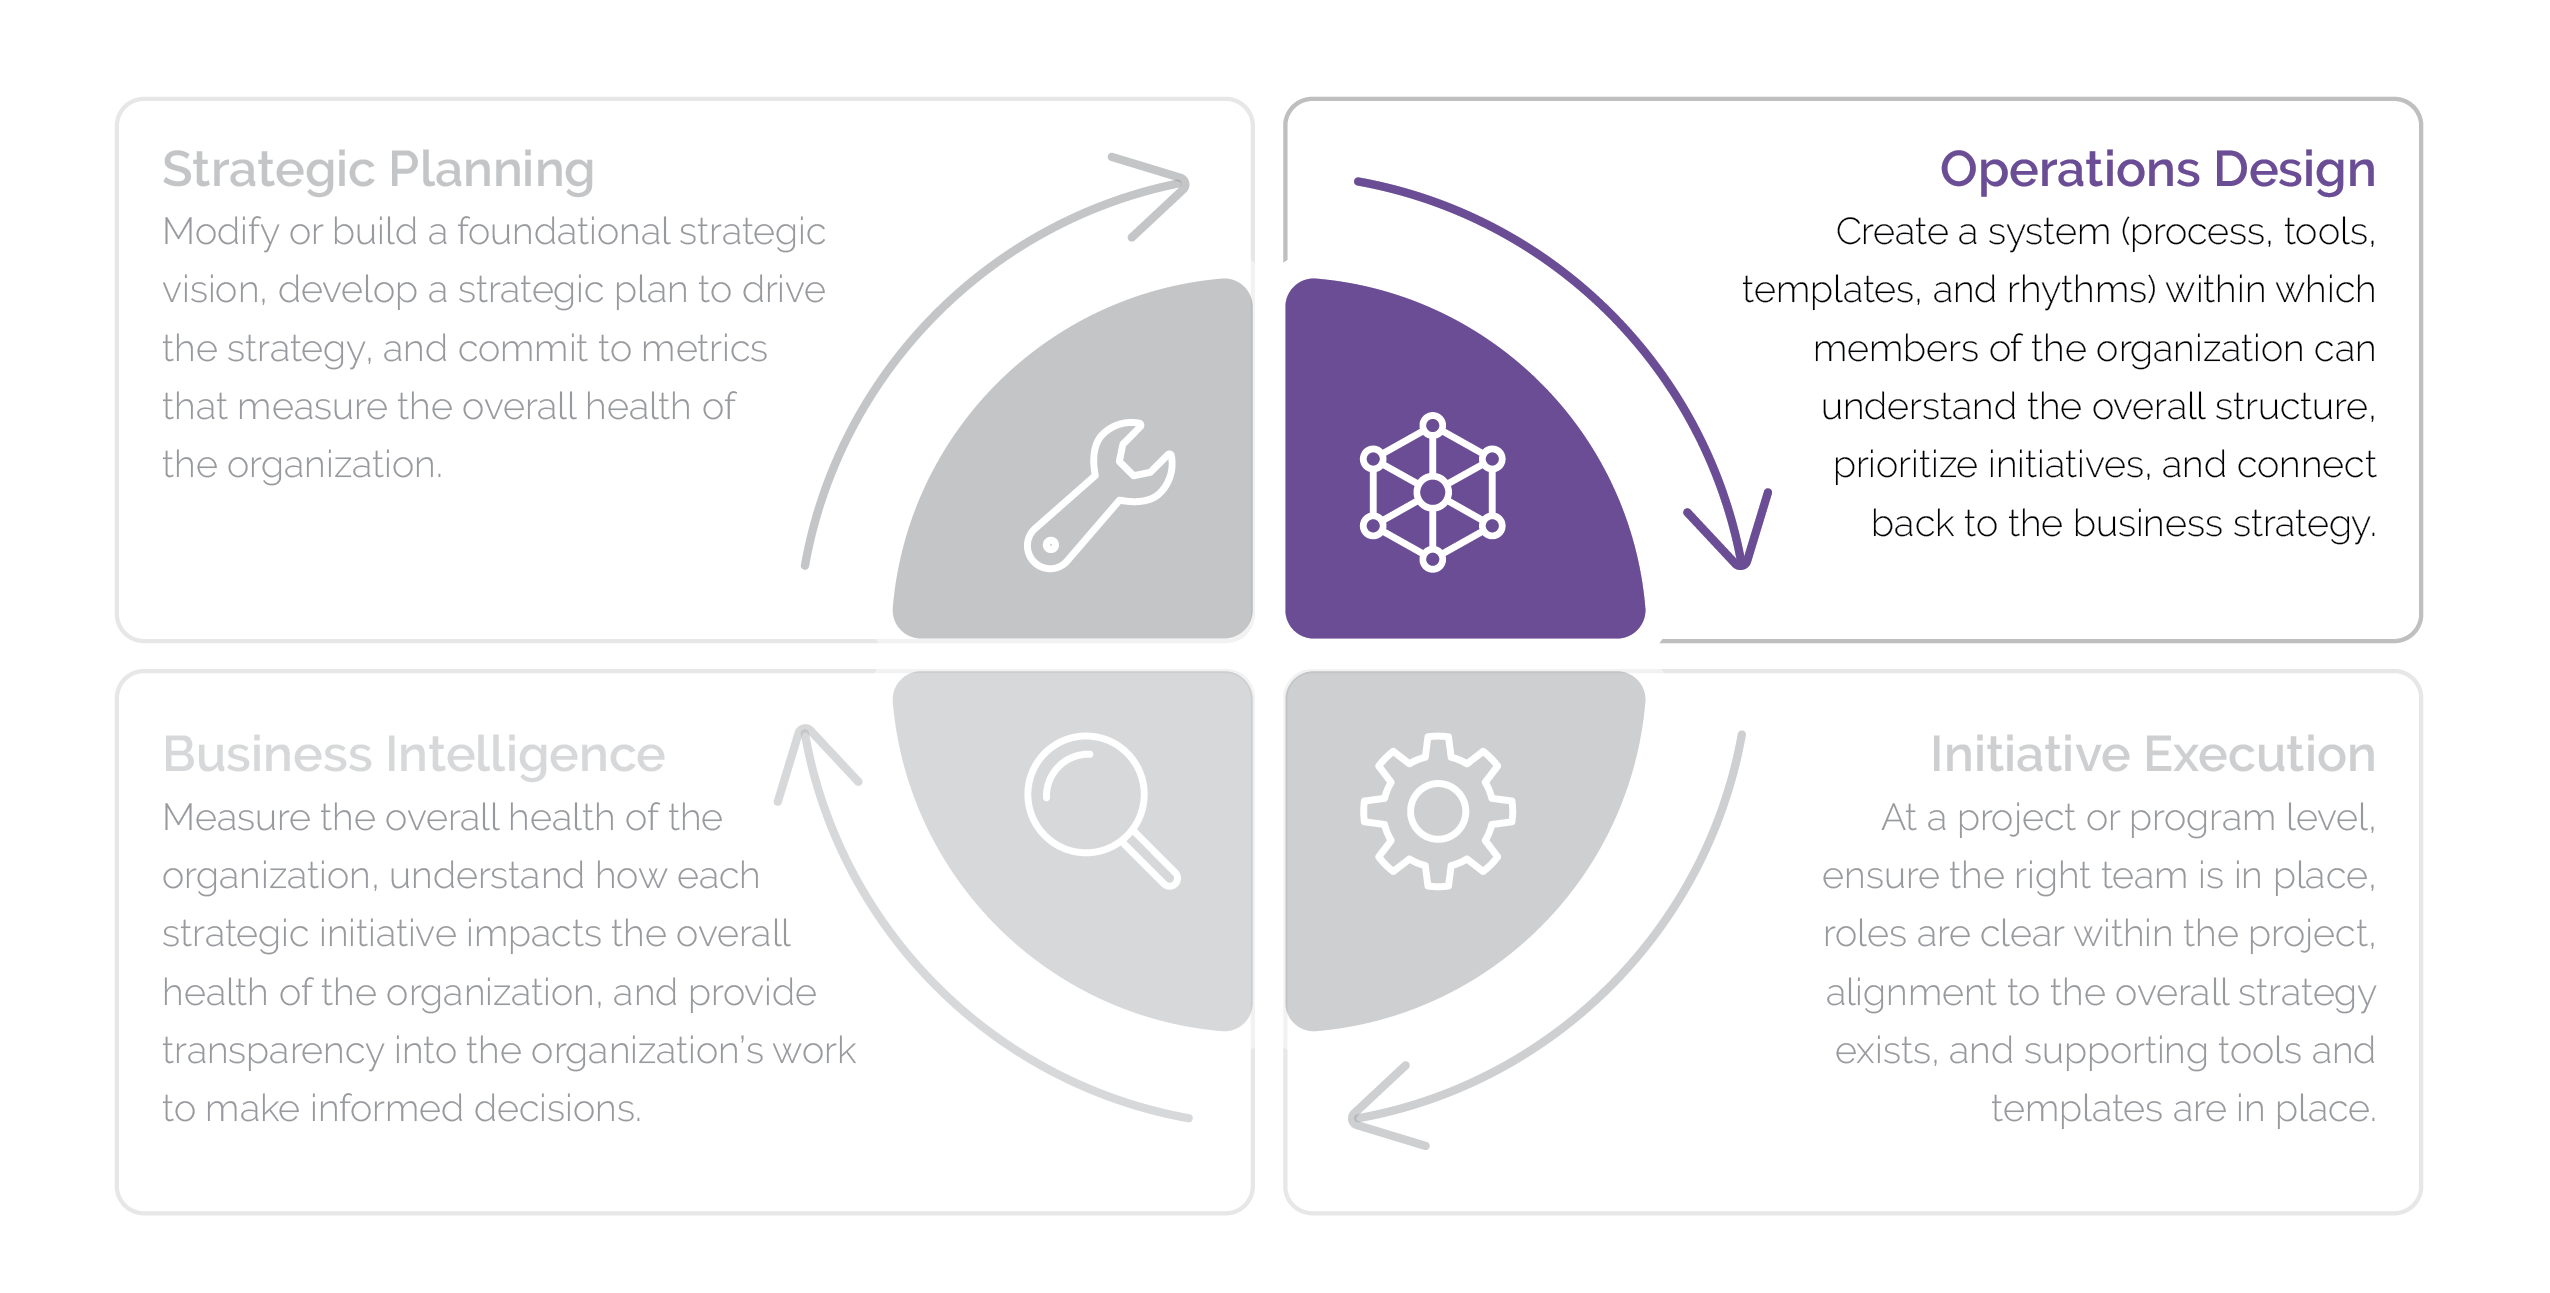 Graphic of the four steps of business operations: strategic planning, operations, design, initiative execution and business intelligence, with an emphasis on operations design